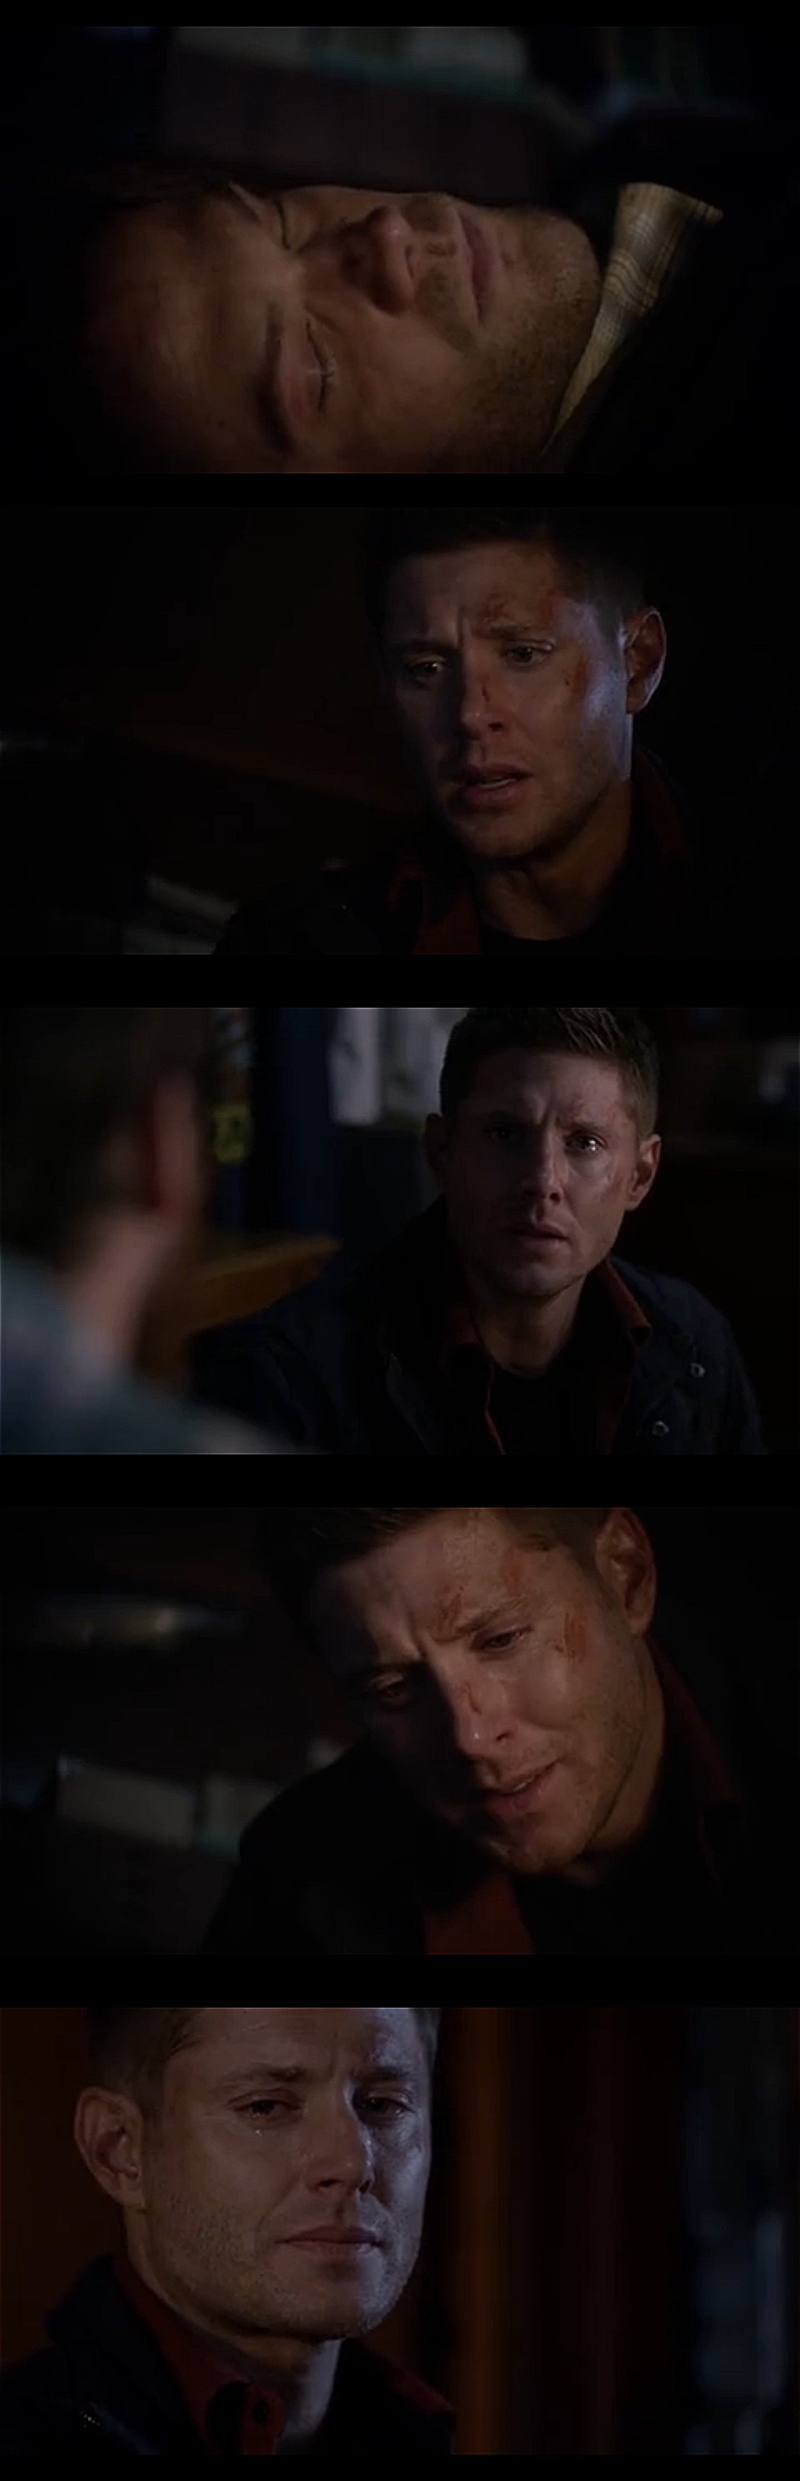 When Dean cry's the world cry's with him 😭😢😔